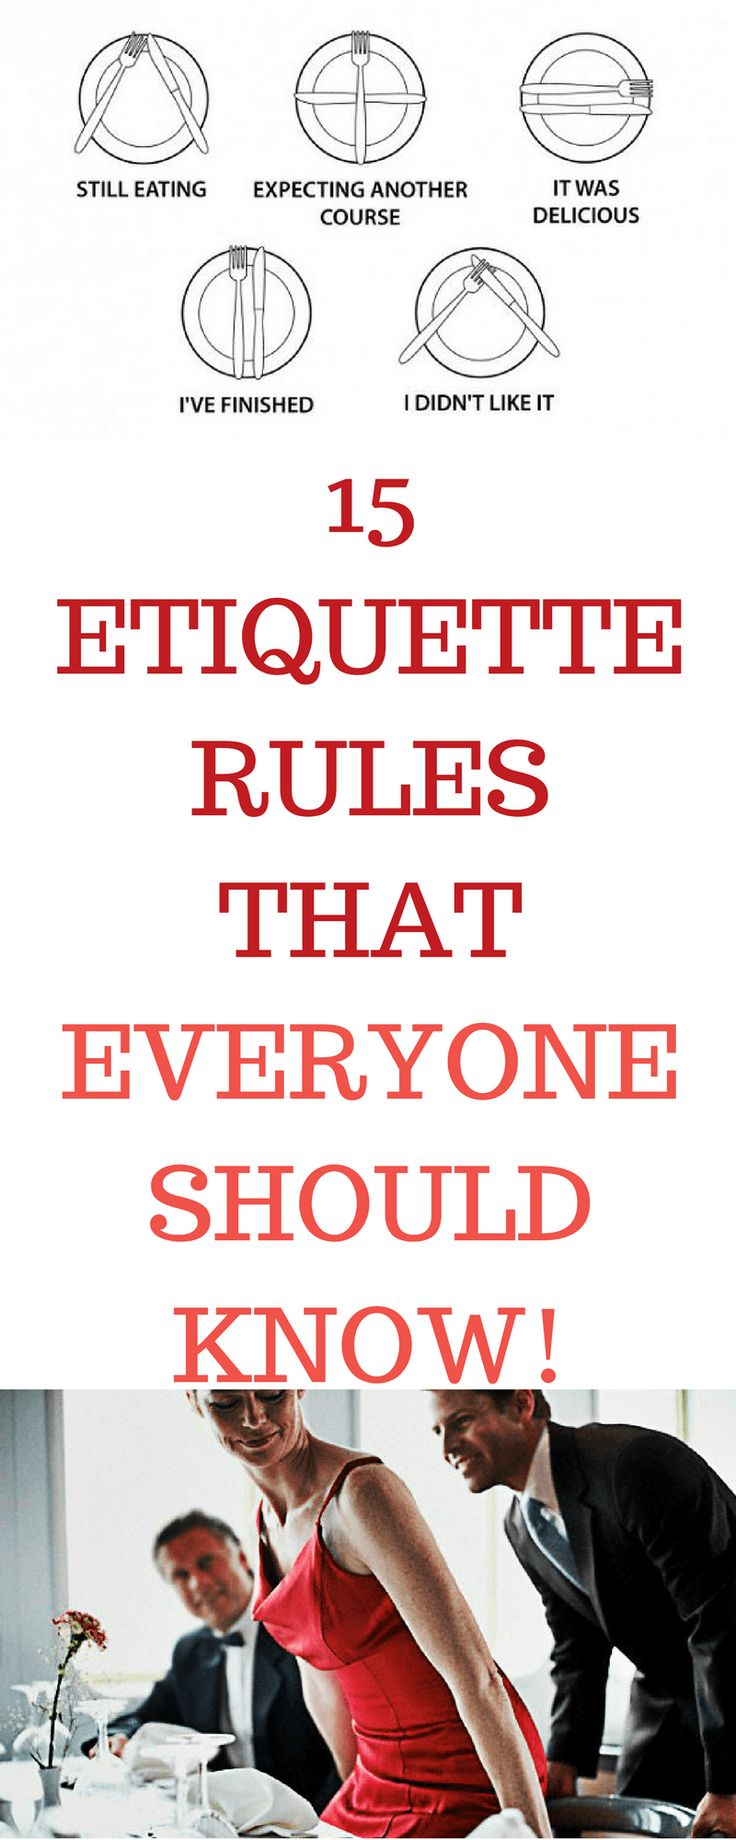 15 ETIQUETTE RULES THAT EVERYONE SHOULD KNOW!